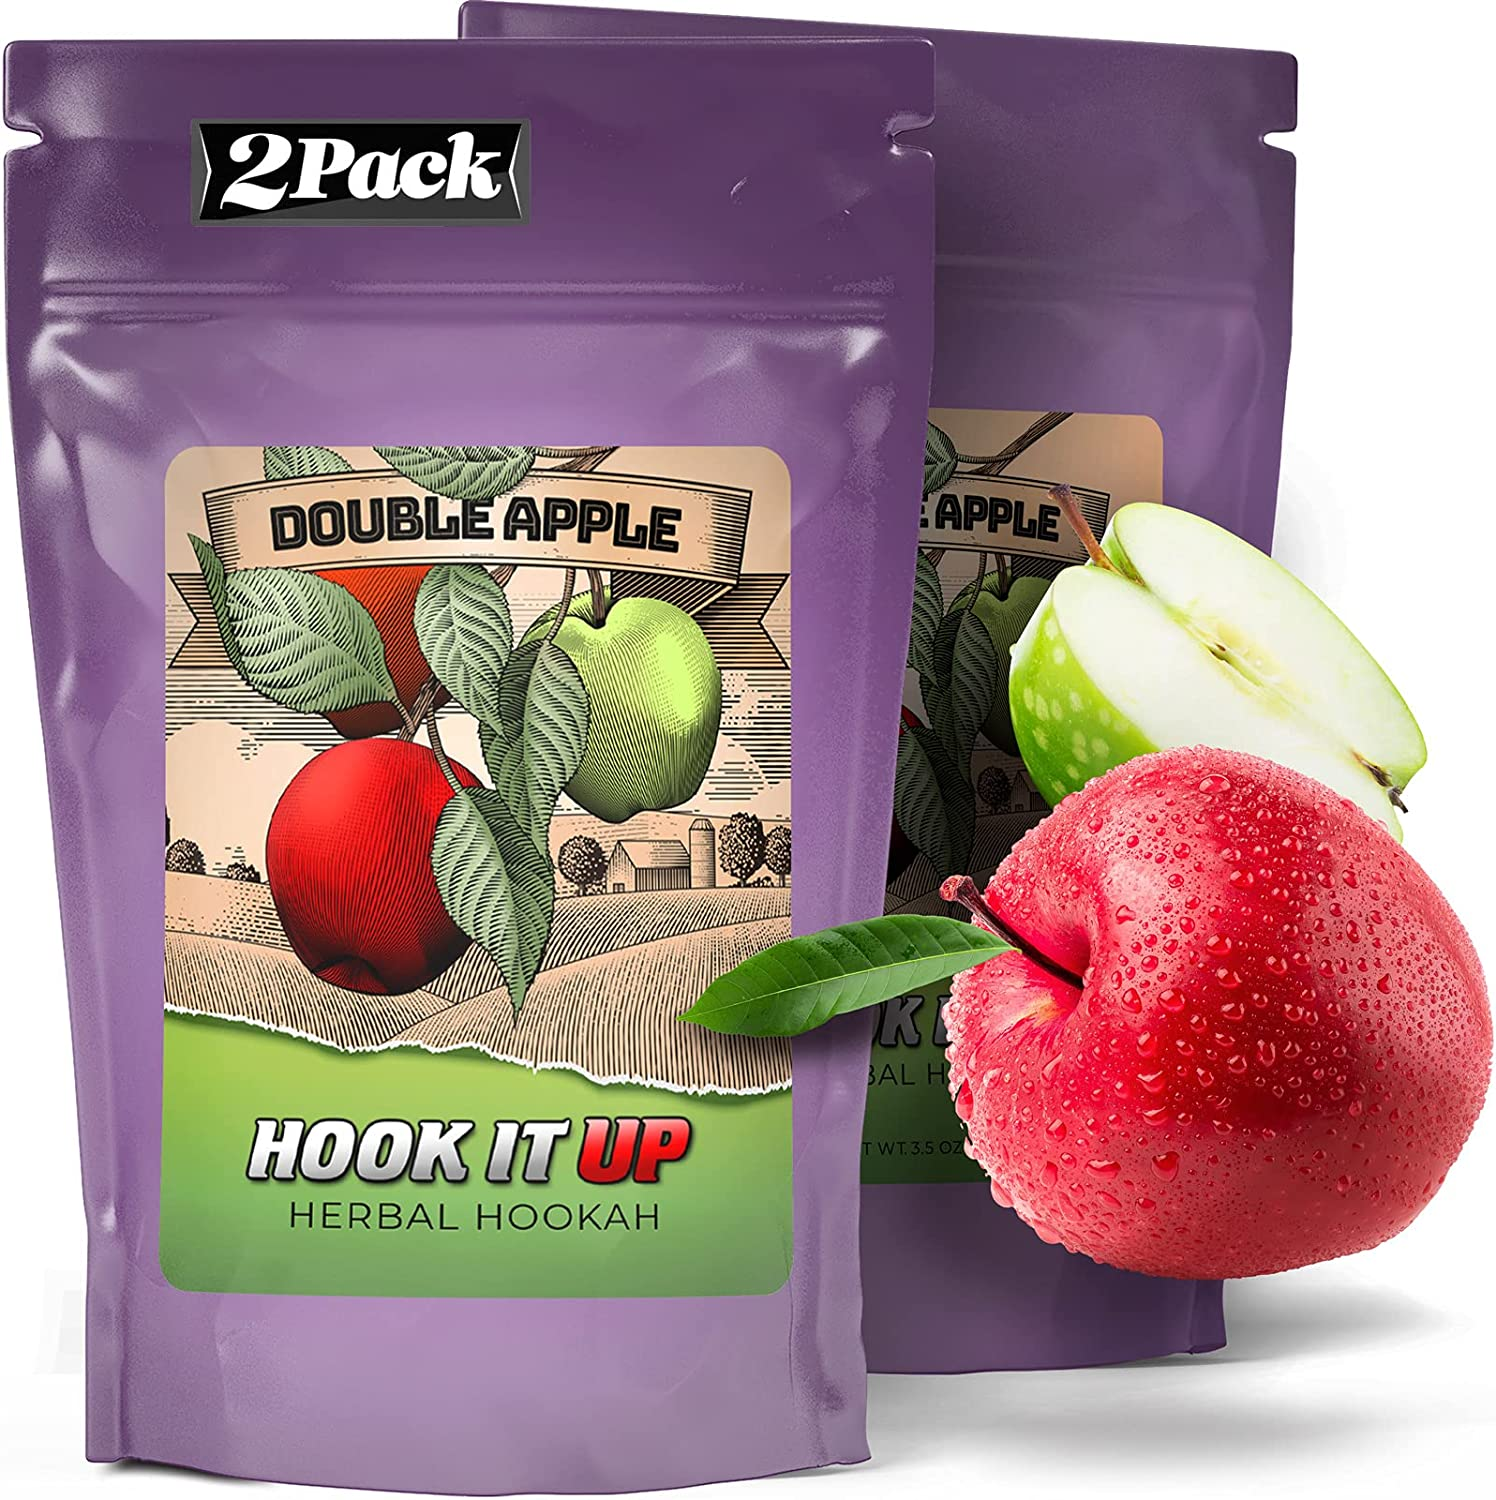 Hookah Flavors Tobacco Free and Nicotine Free. Double Apple Shisha. Herbal Molasses by Hook IT UP. (Pack of 2) 200g 7oz Total